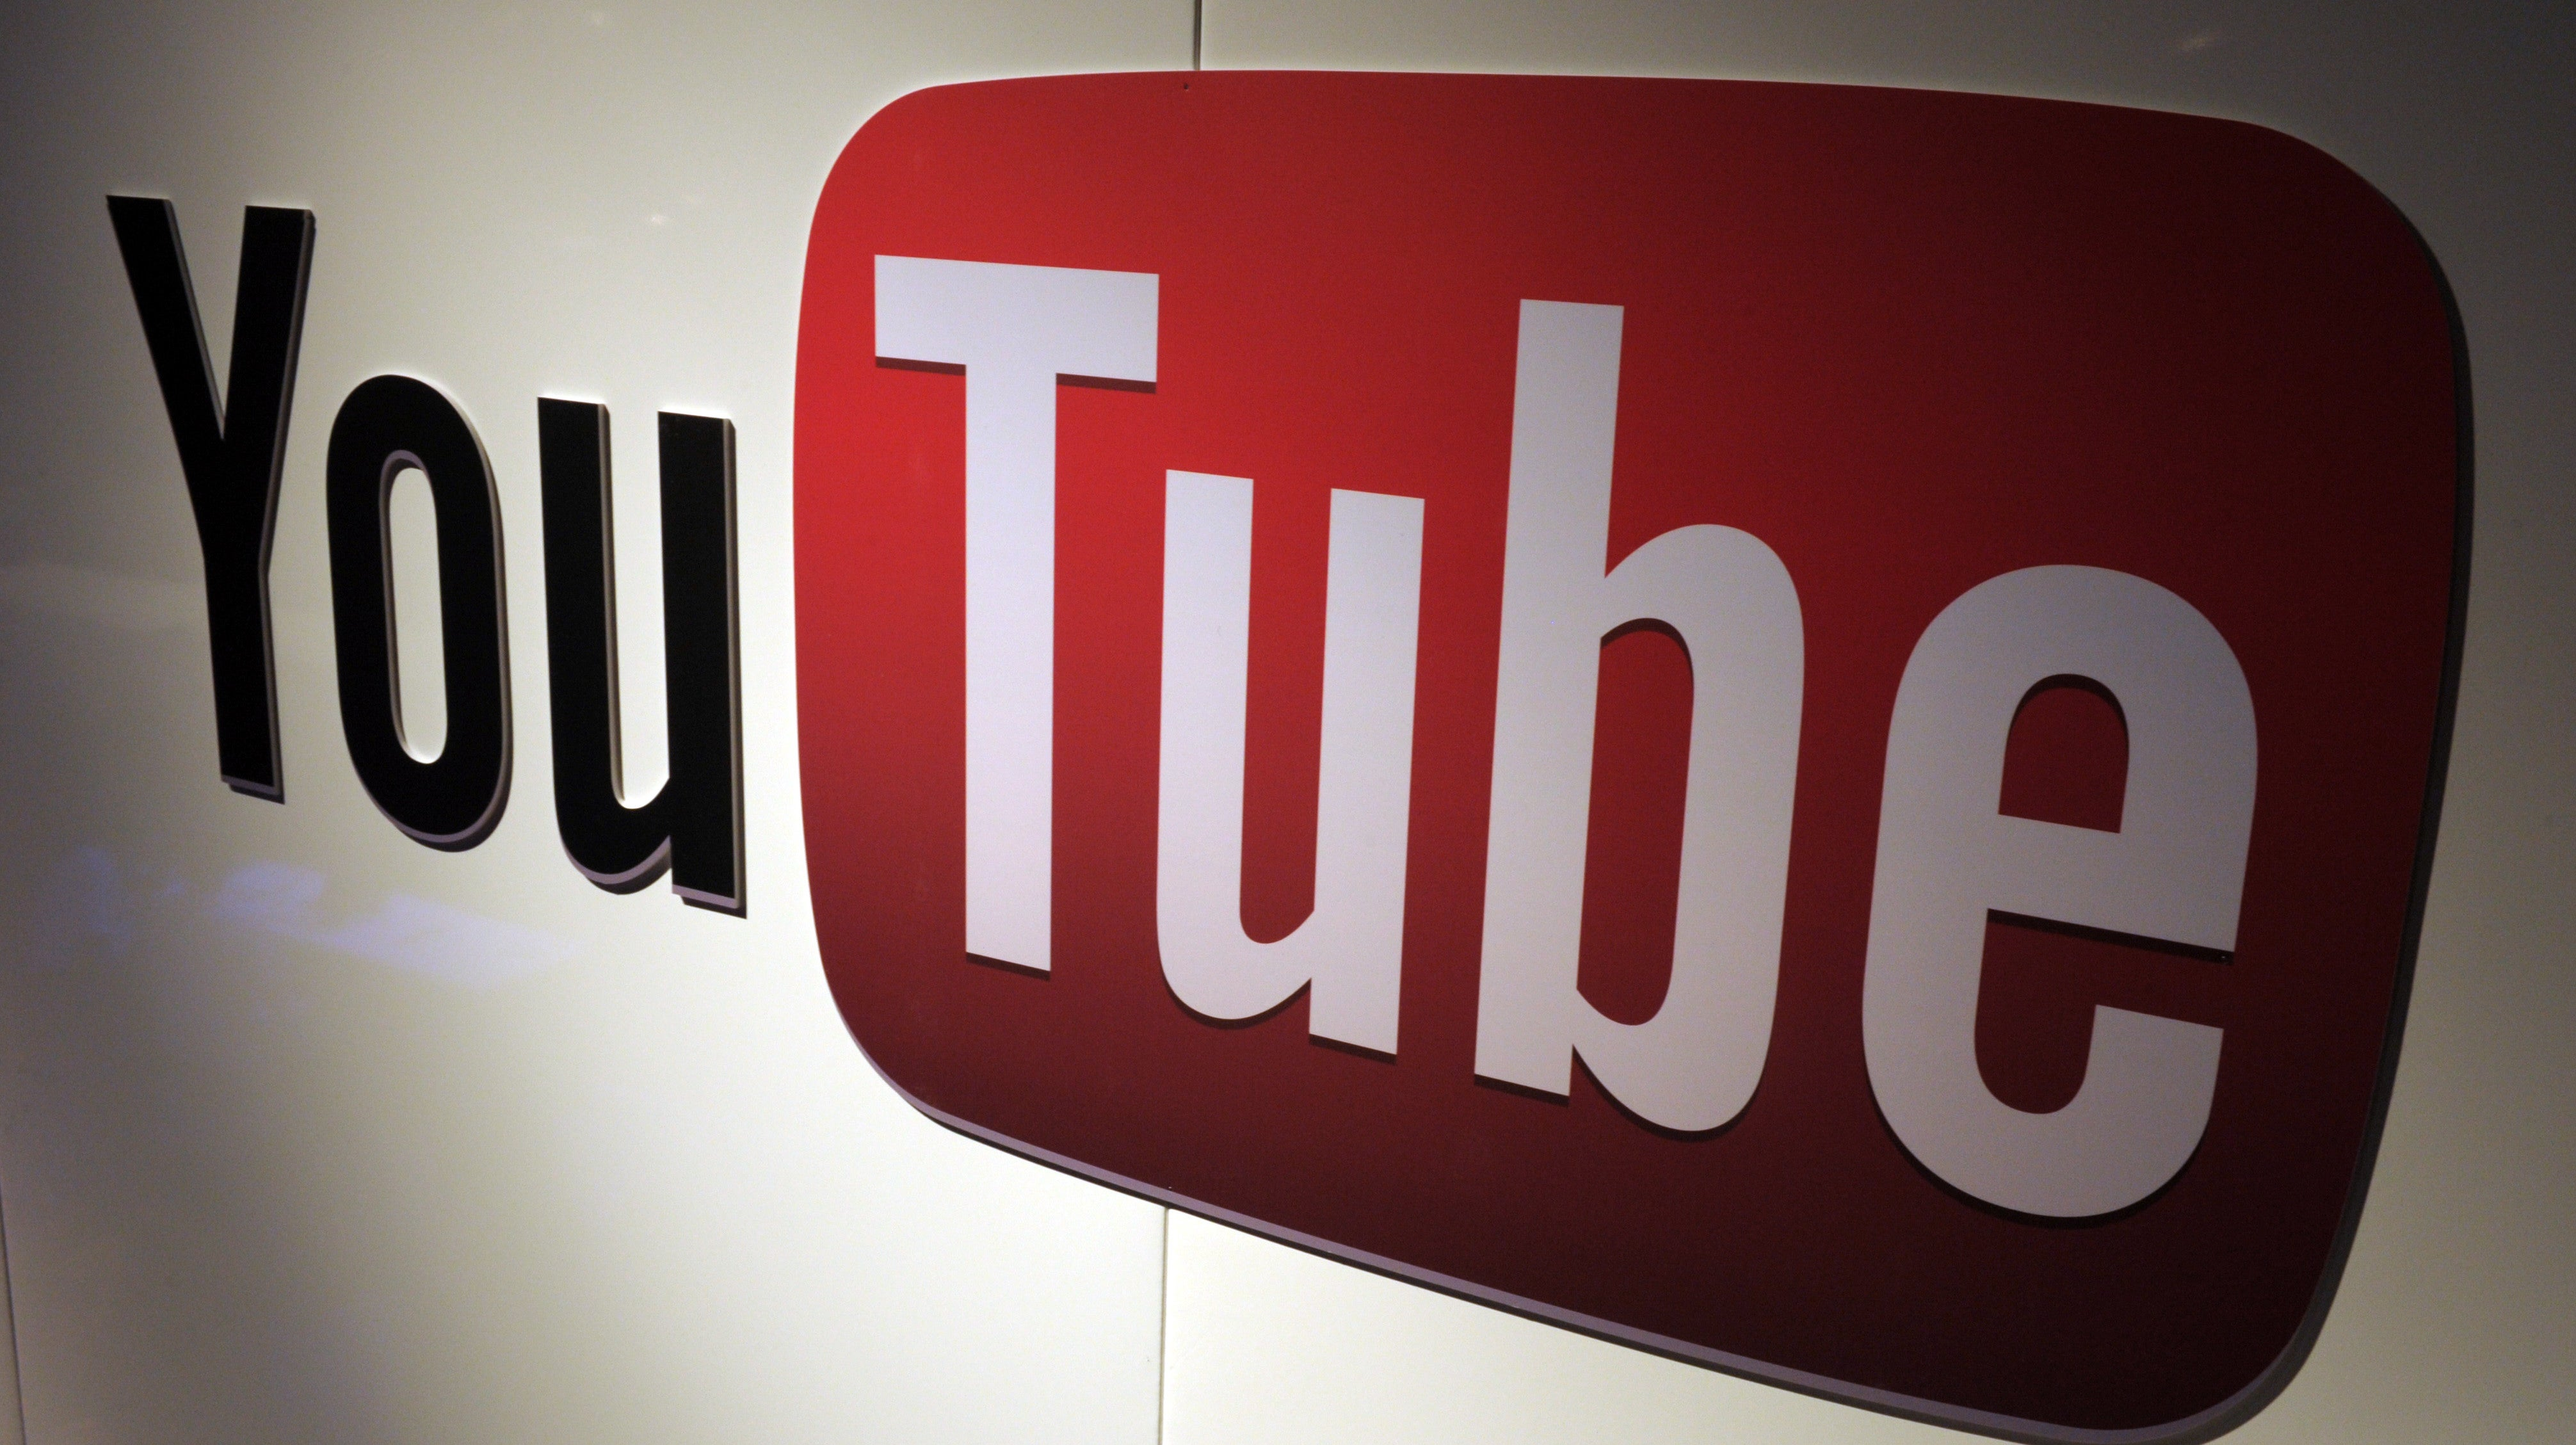 Rewatch The Most Popular YouTube Videos From Exactly A Decade Ago Using This Site